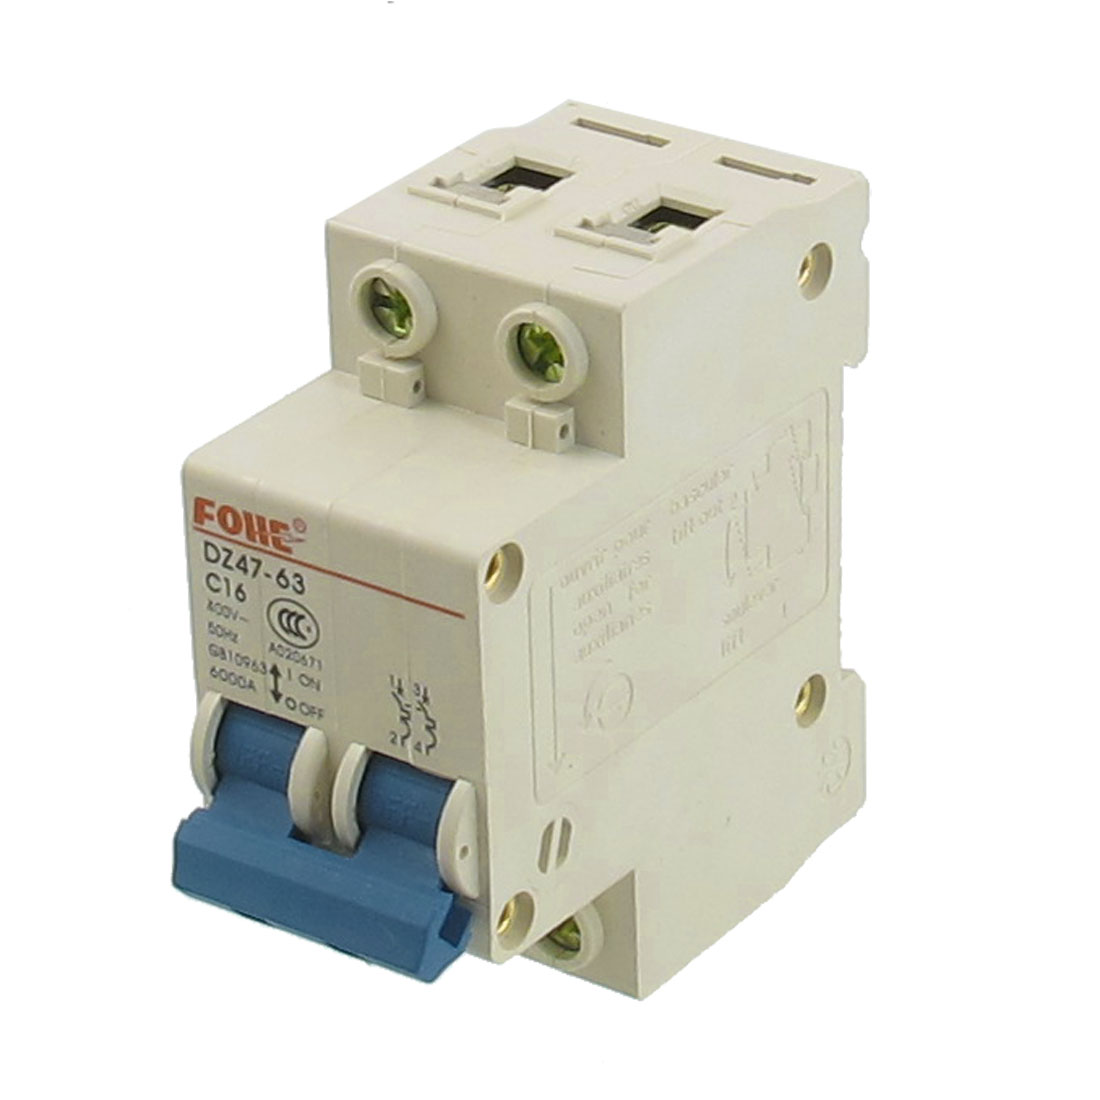 AC 400V 16A 2 Poles Overload Protection MCB Mini Circuit Breaker